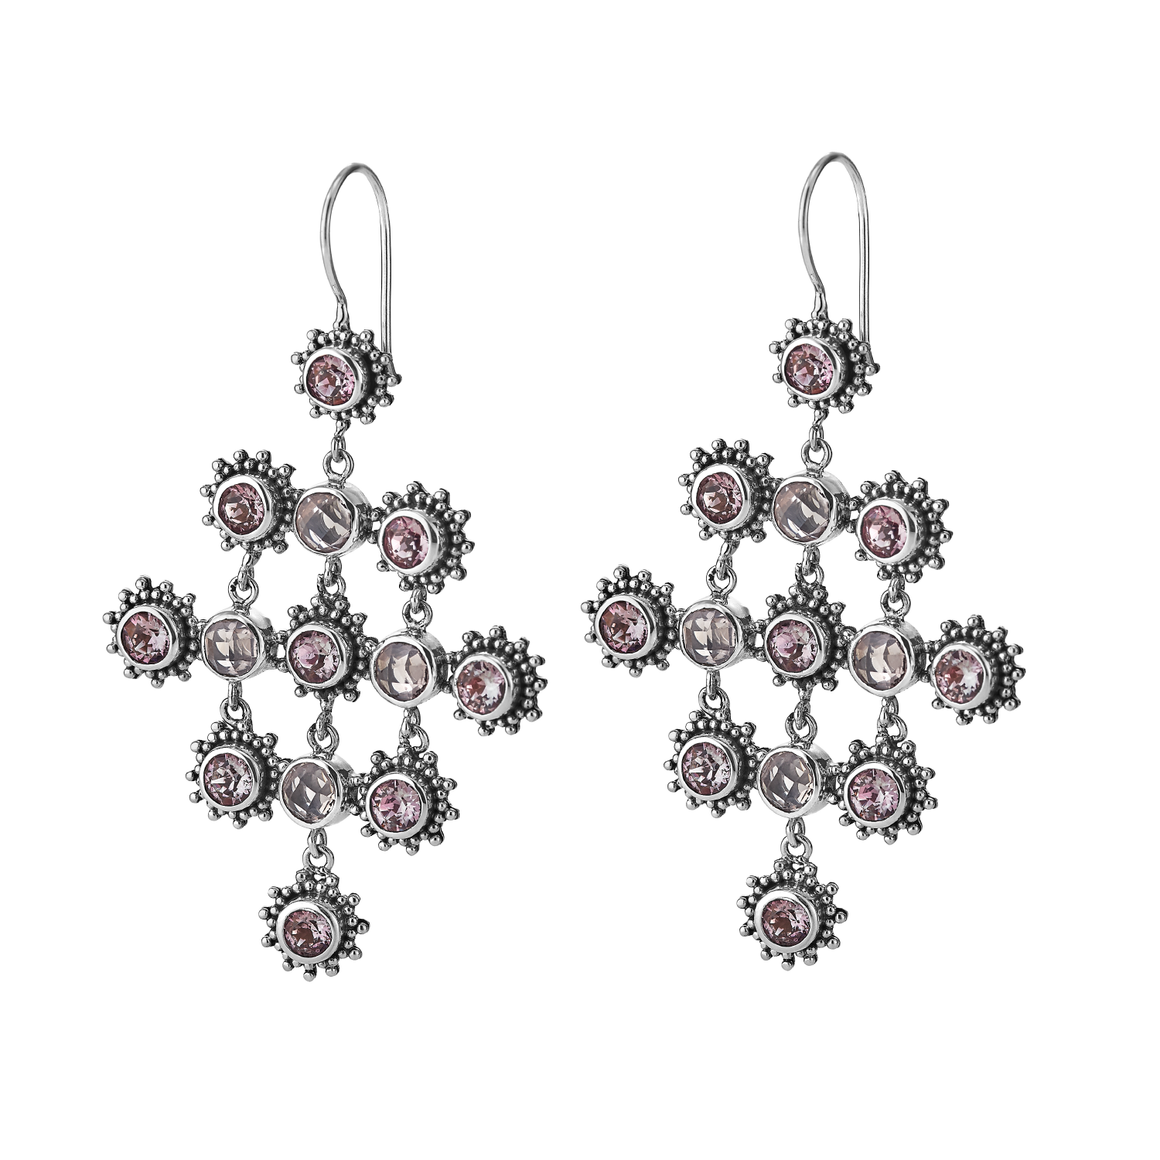 Rosy Future Chandelier Earrings